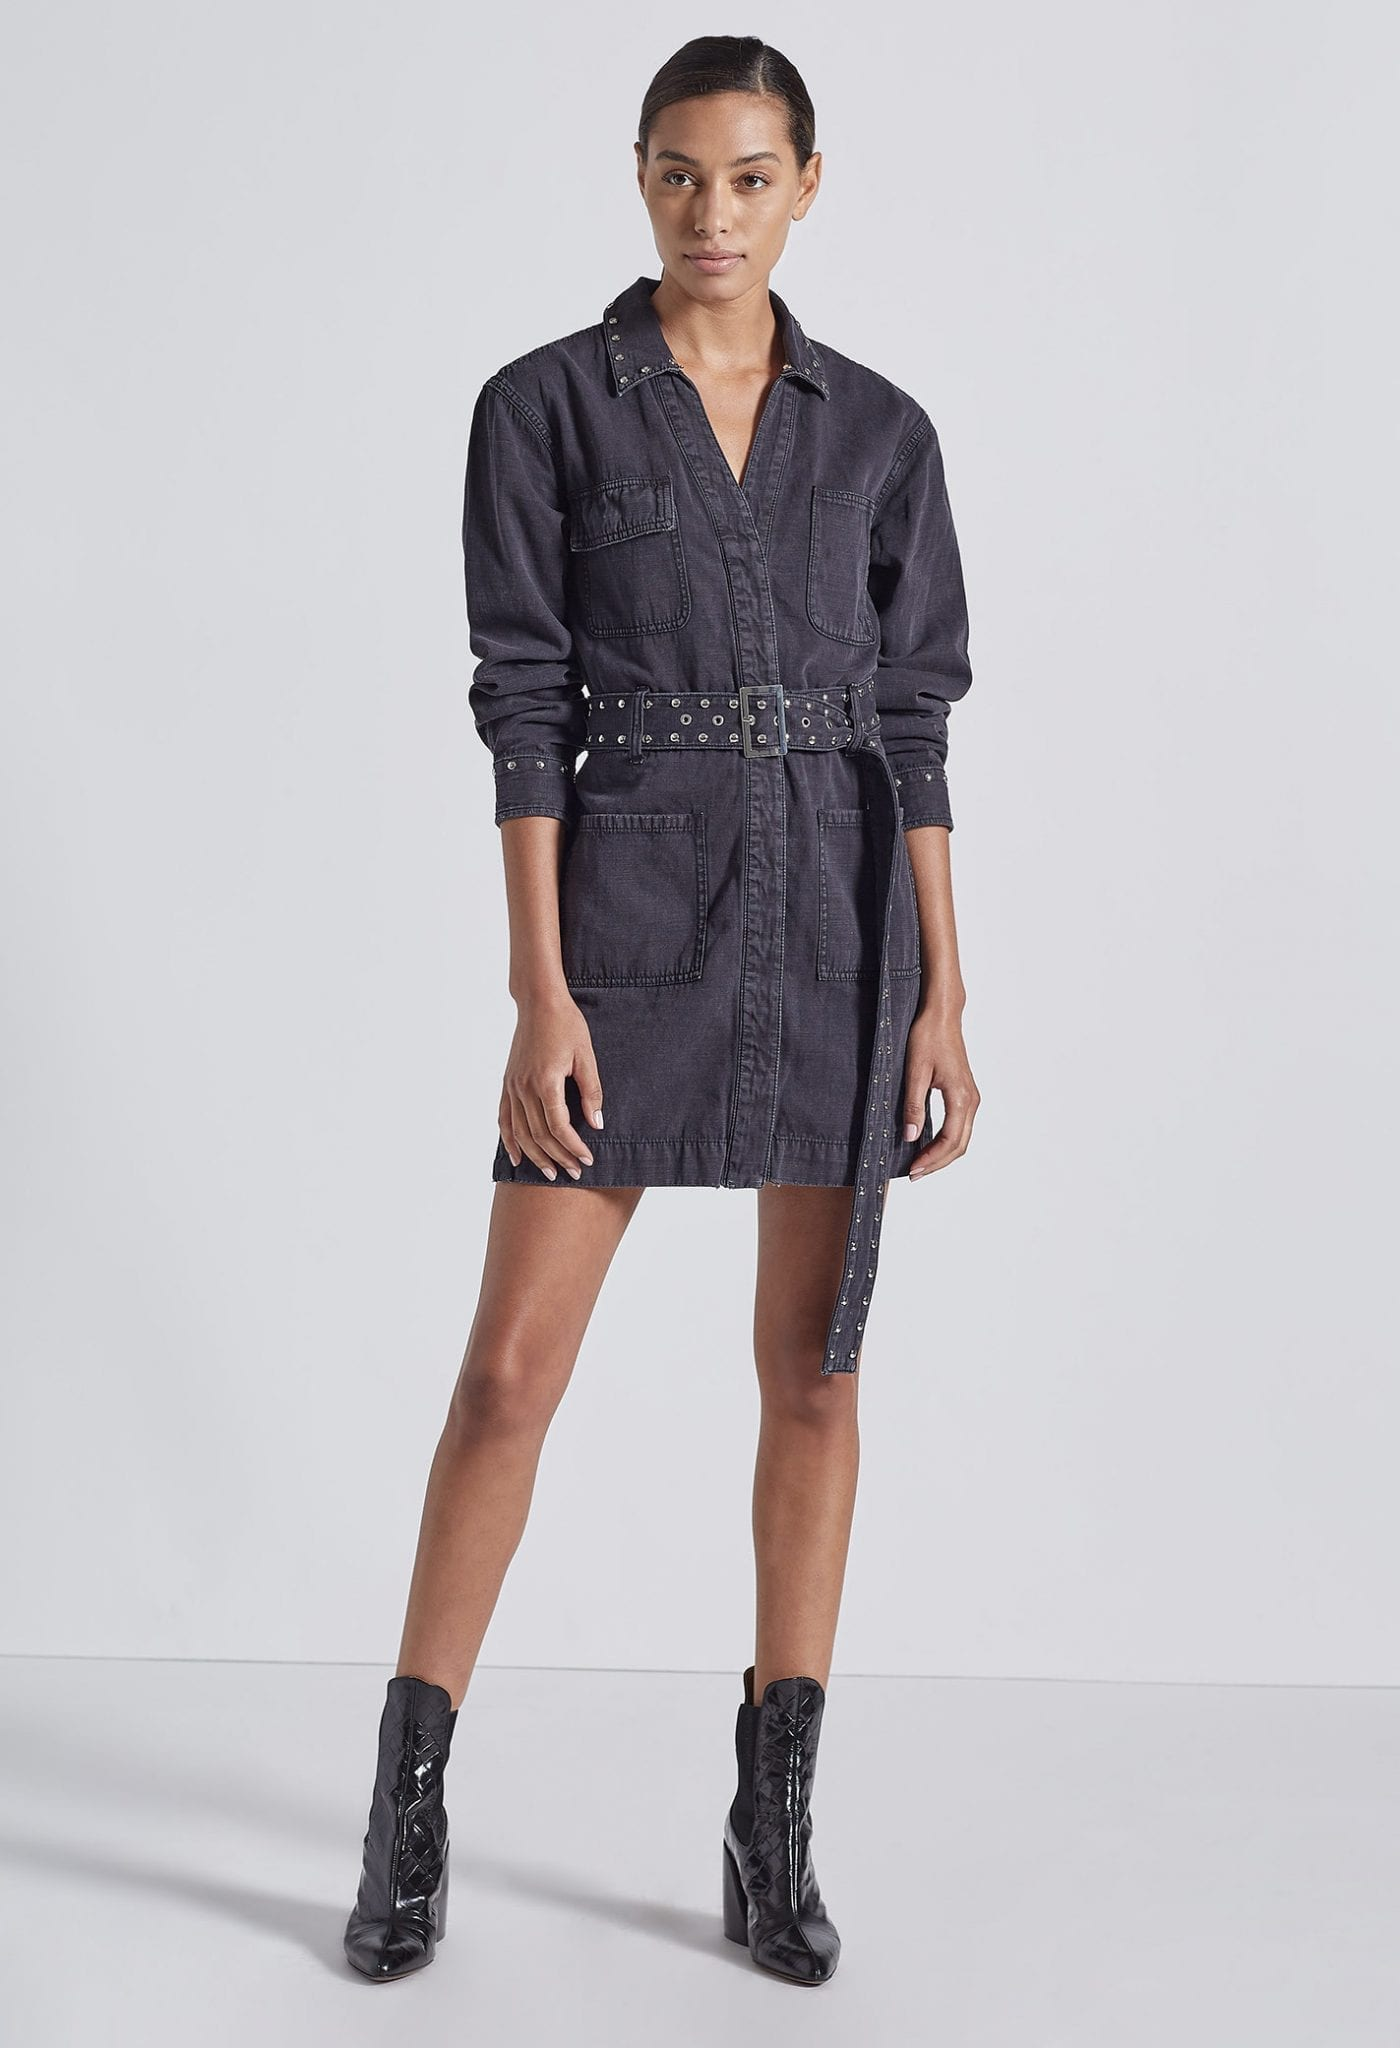 CURRENT ELLIOT The Studded Debbie Shirt Dress